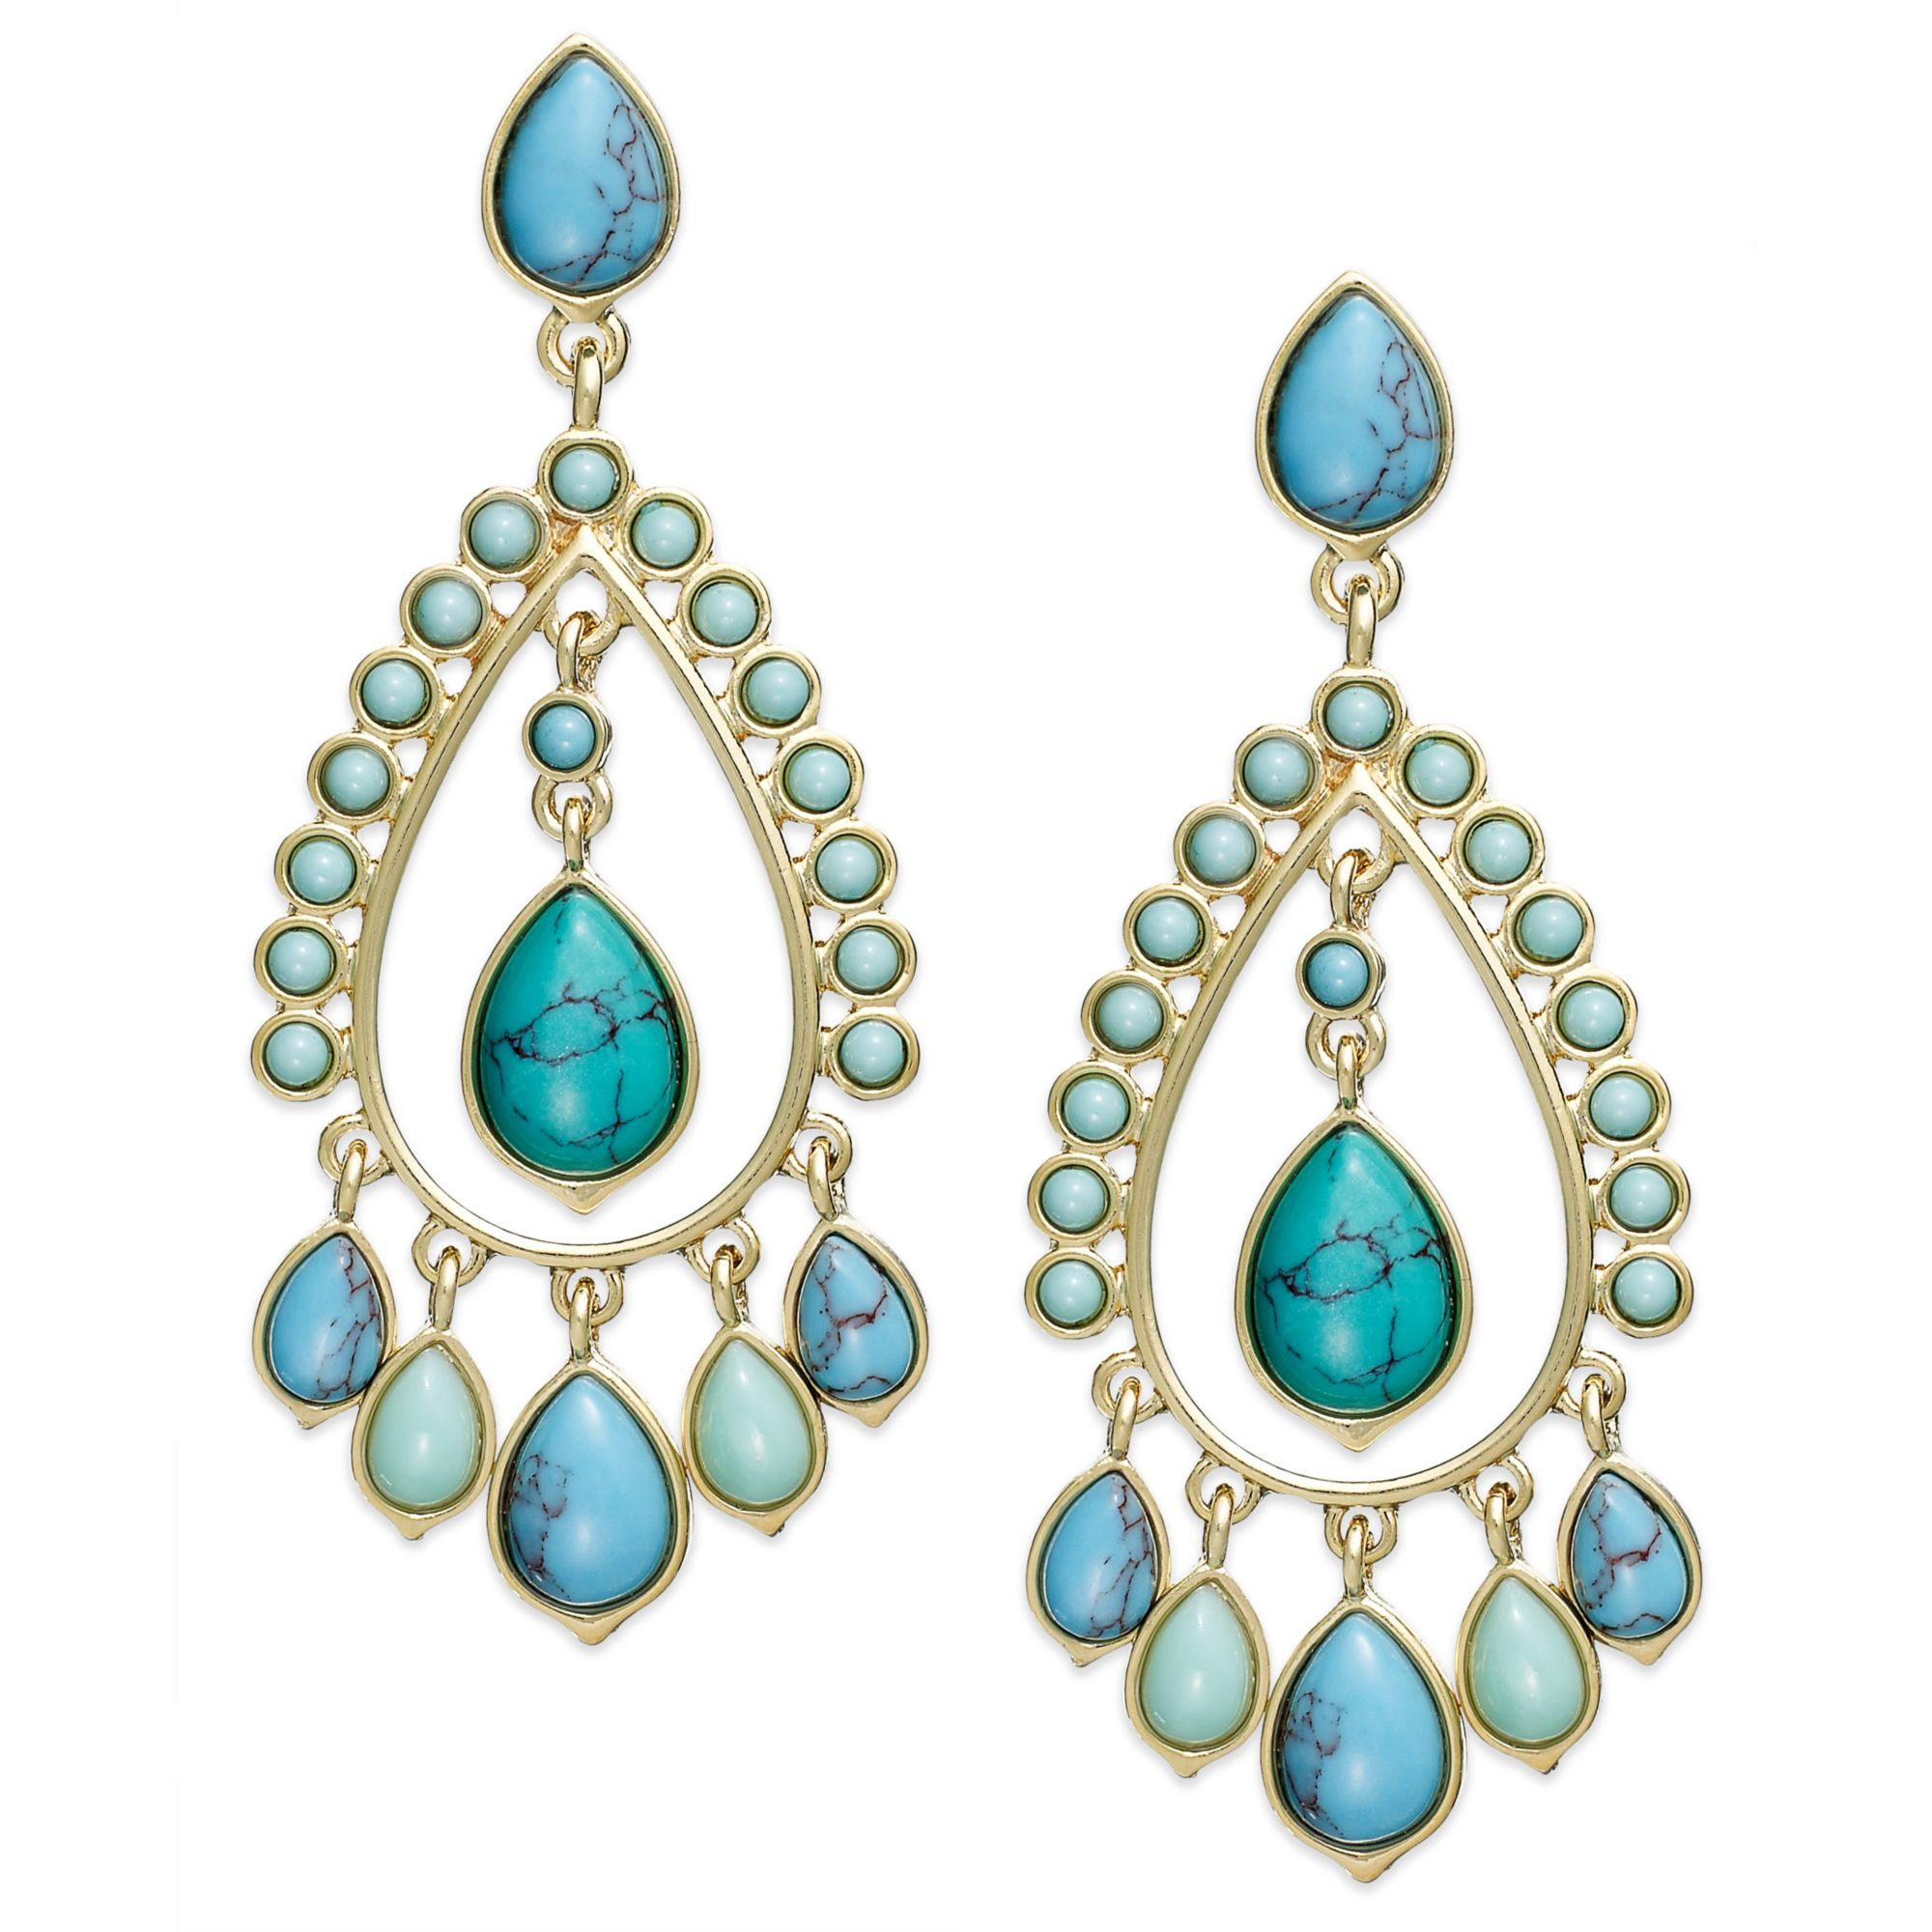 Lauren by ralph lauren 14k Goldtone Reconstituted Turquoise – Gold Tone Chandelier Earrings